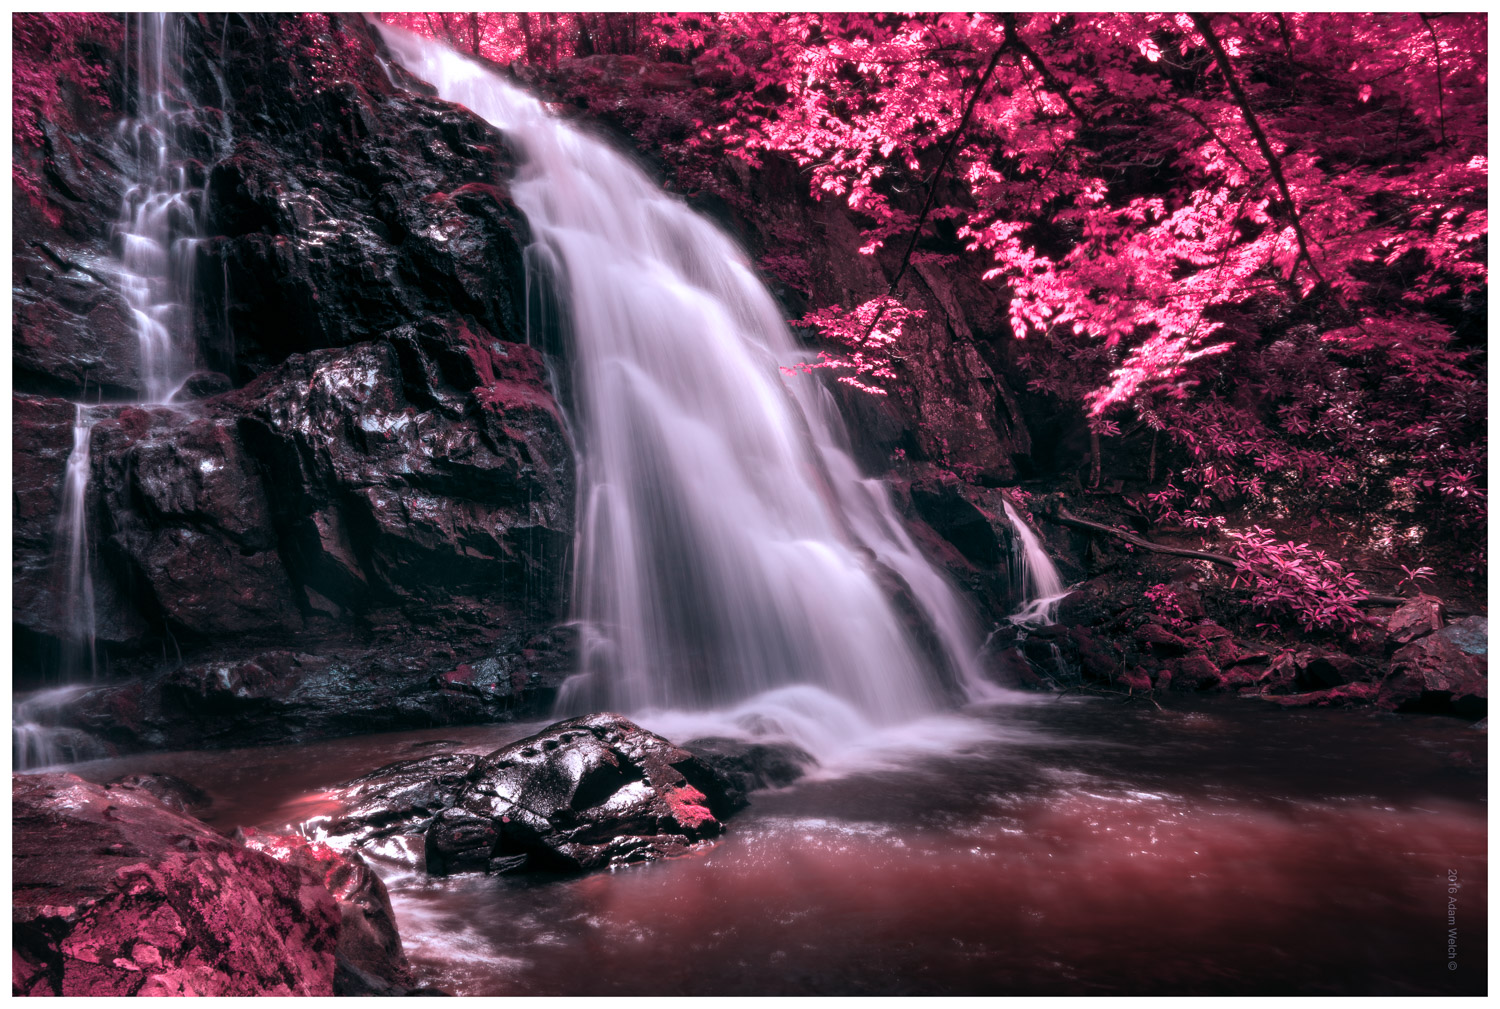 A waterfall of Infrared photography in Photoshop